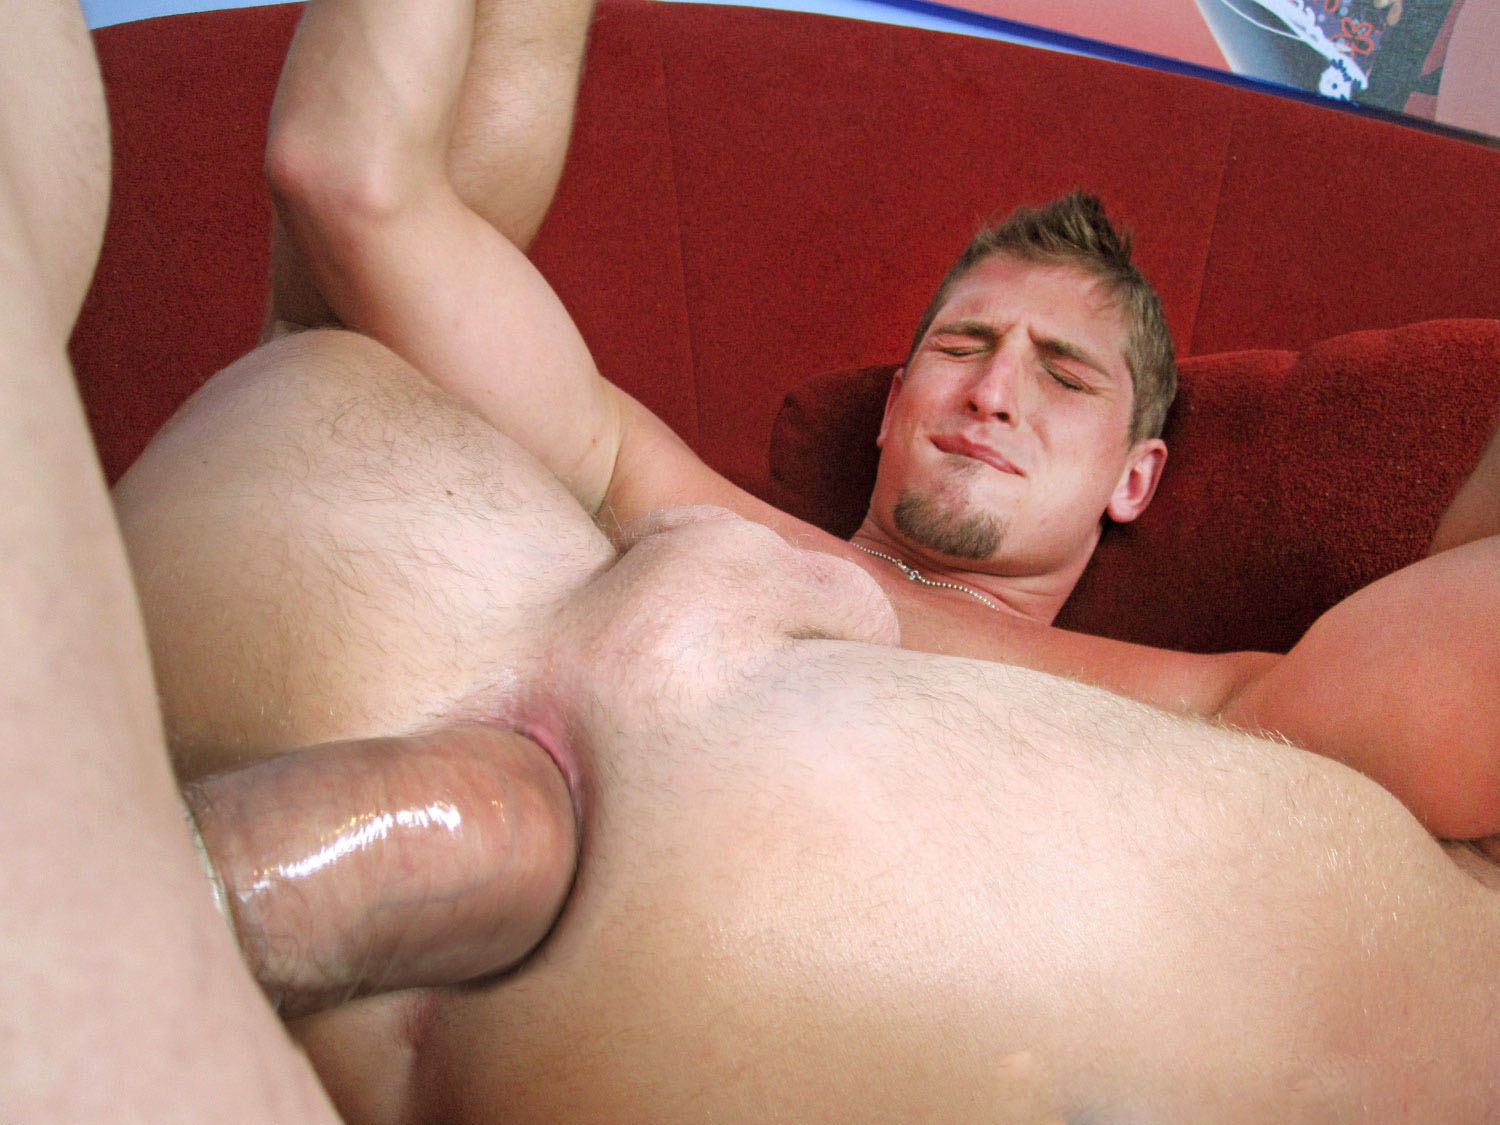 Xvideos gay big dick